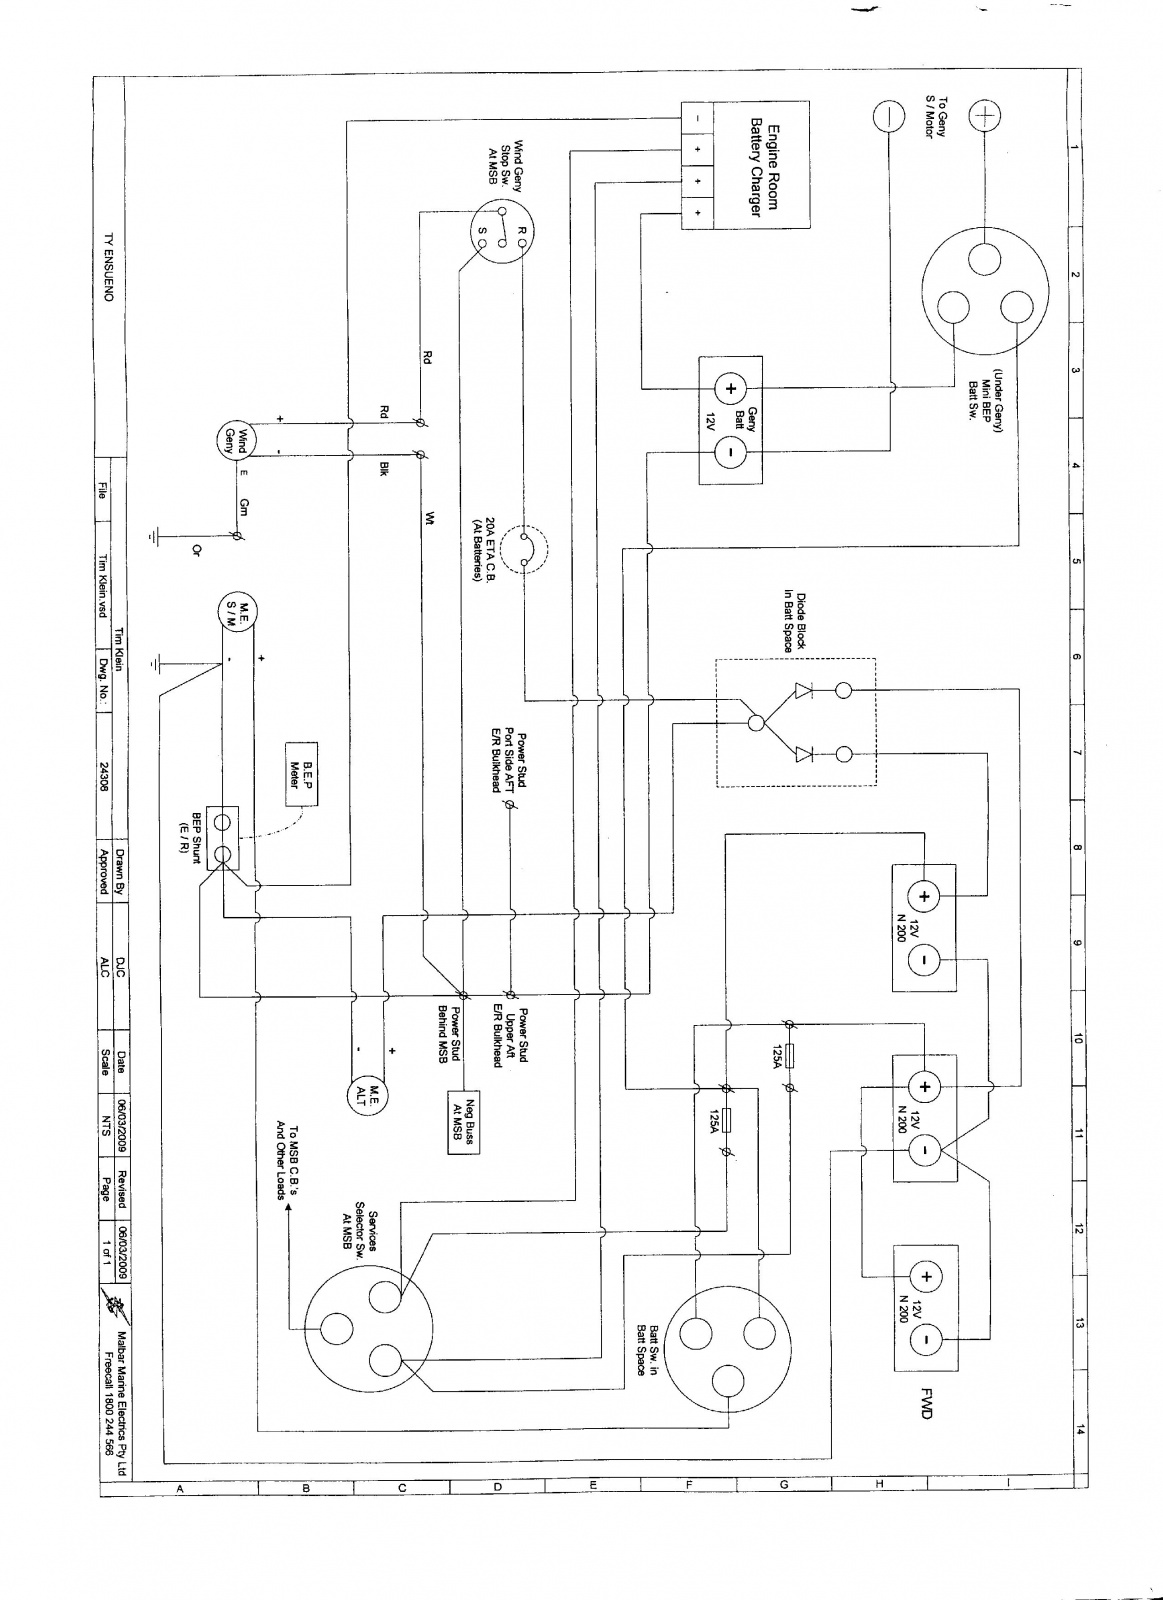 Genset Alternator Inverter Charger Questions Cruisers Bep Wiring Diagram Click Image For Larger Version Name Img023 Views 576 Size 3353